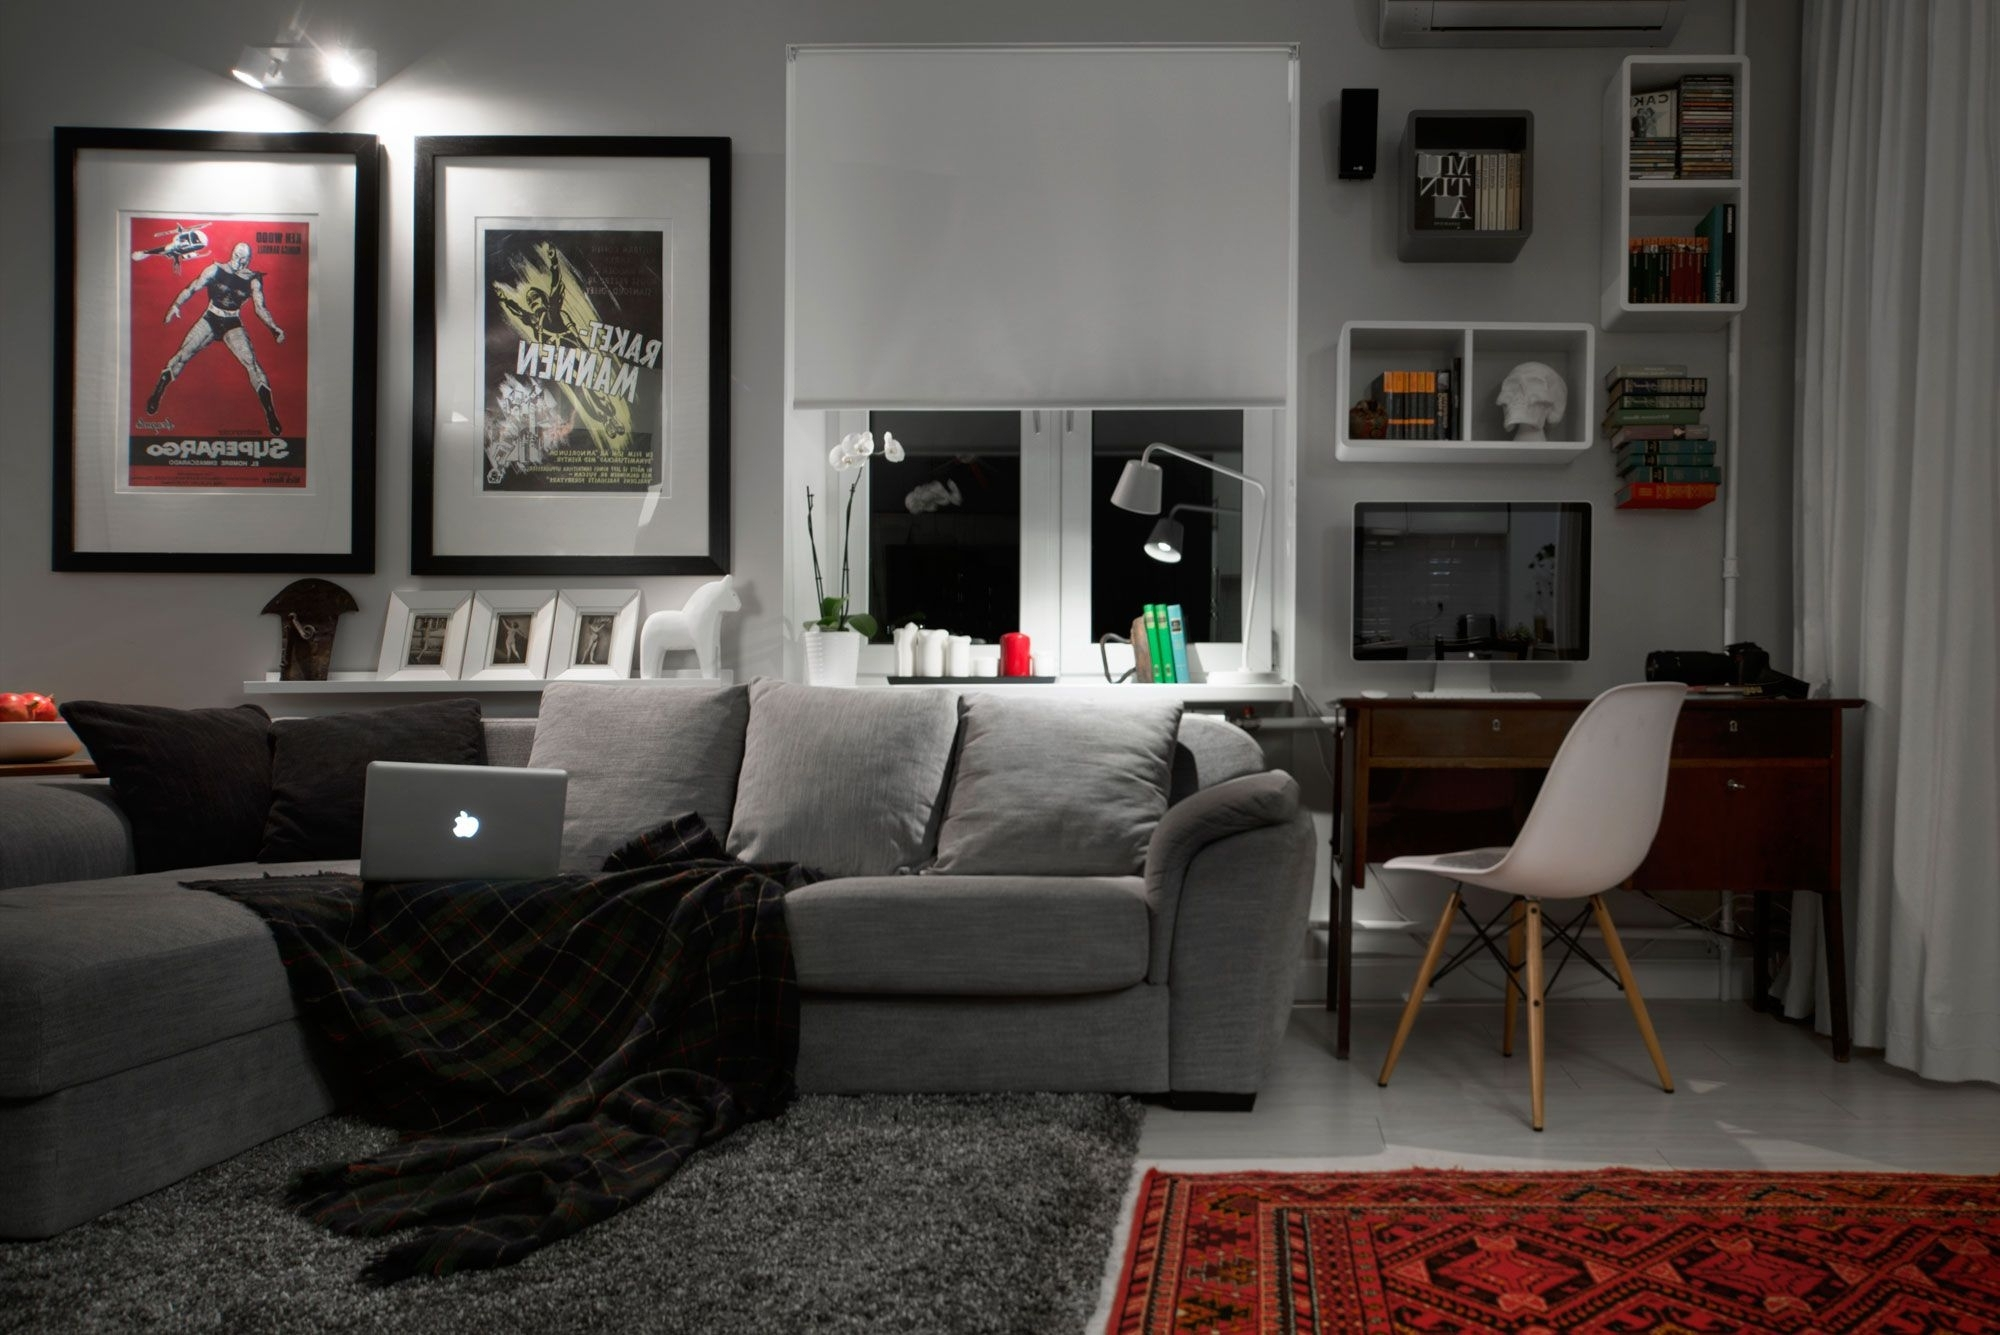 Well Liked Bachelor Pad Wall Art With Bedroom : Bachelor Room Ideas Bachelor Wall Art Modern Bachelor (View 13 of 15)